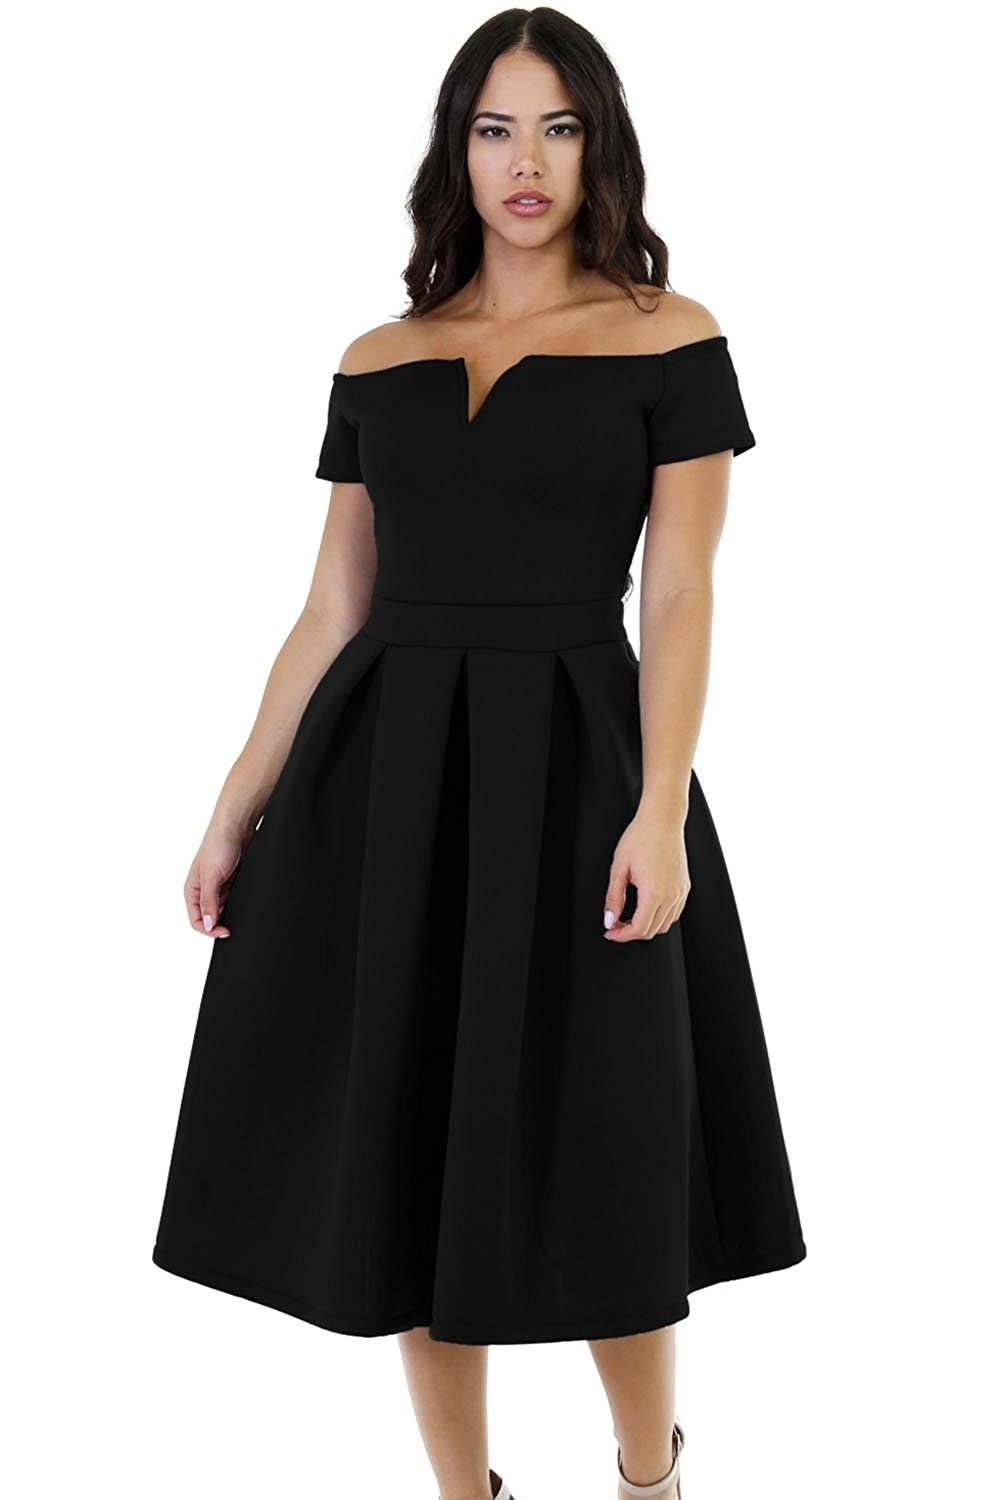 40 stunning and cheap dresses to wear to a winter wedding a timeless off the shoulder dress for you to be with for all your days because you make a perfect pair ombrellifo Gallery